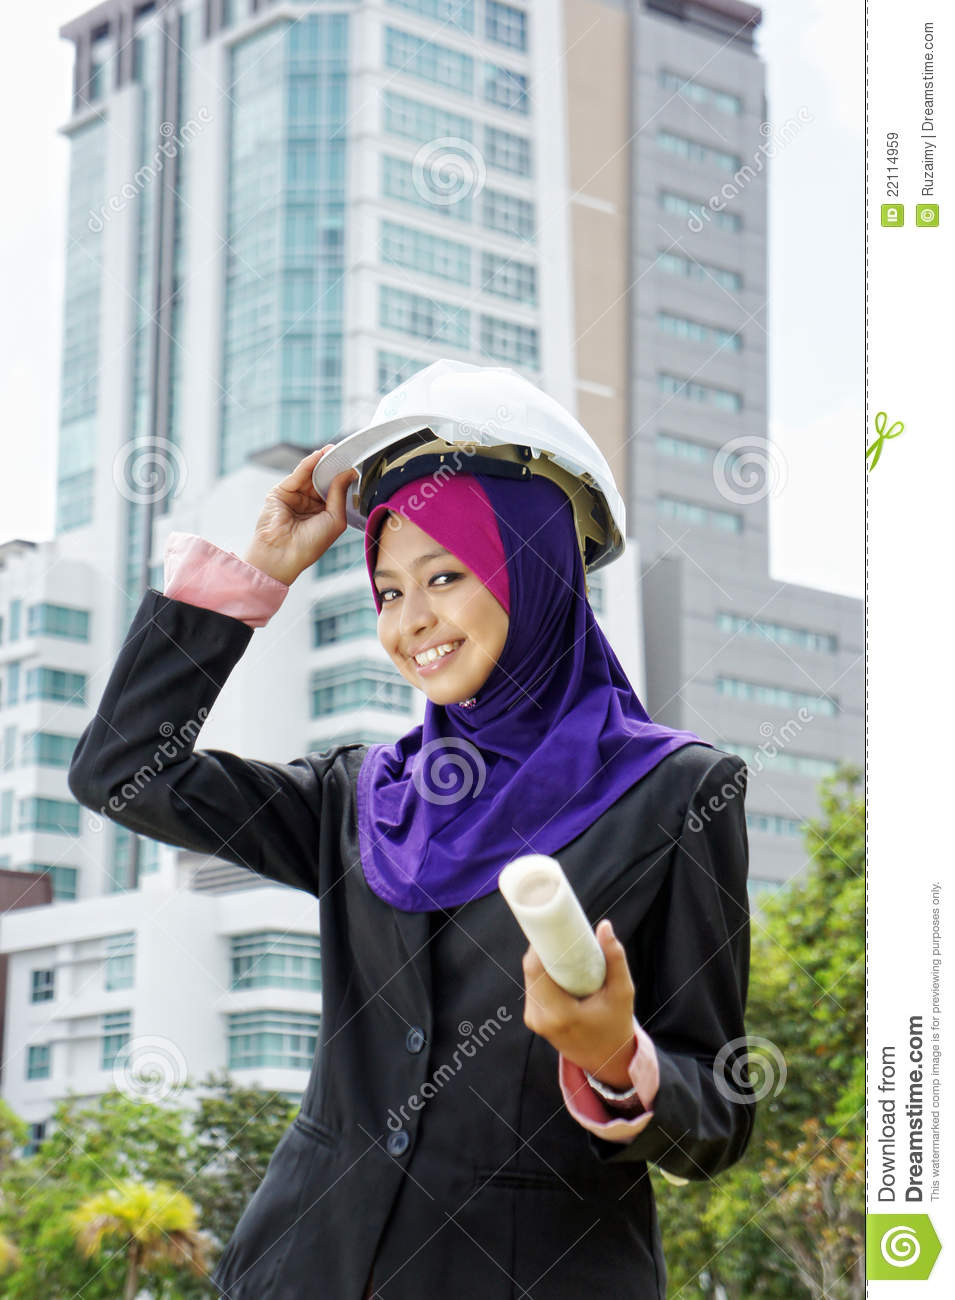 avonmore muslim single women Avonmore hot singles signup free and meet 1000s of local women and men in avonmore, pennsylvania looking to hookup on bookofmatchescom.